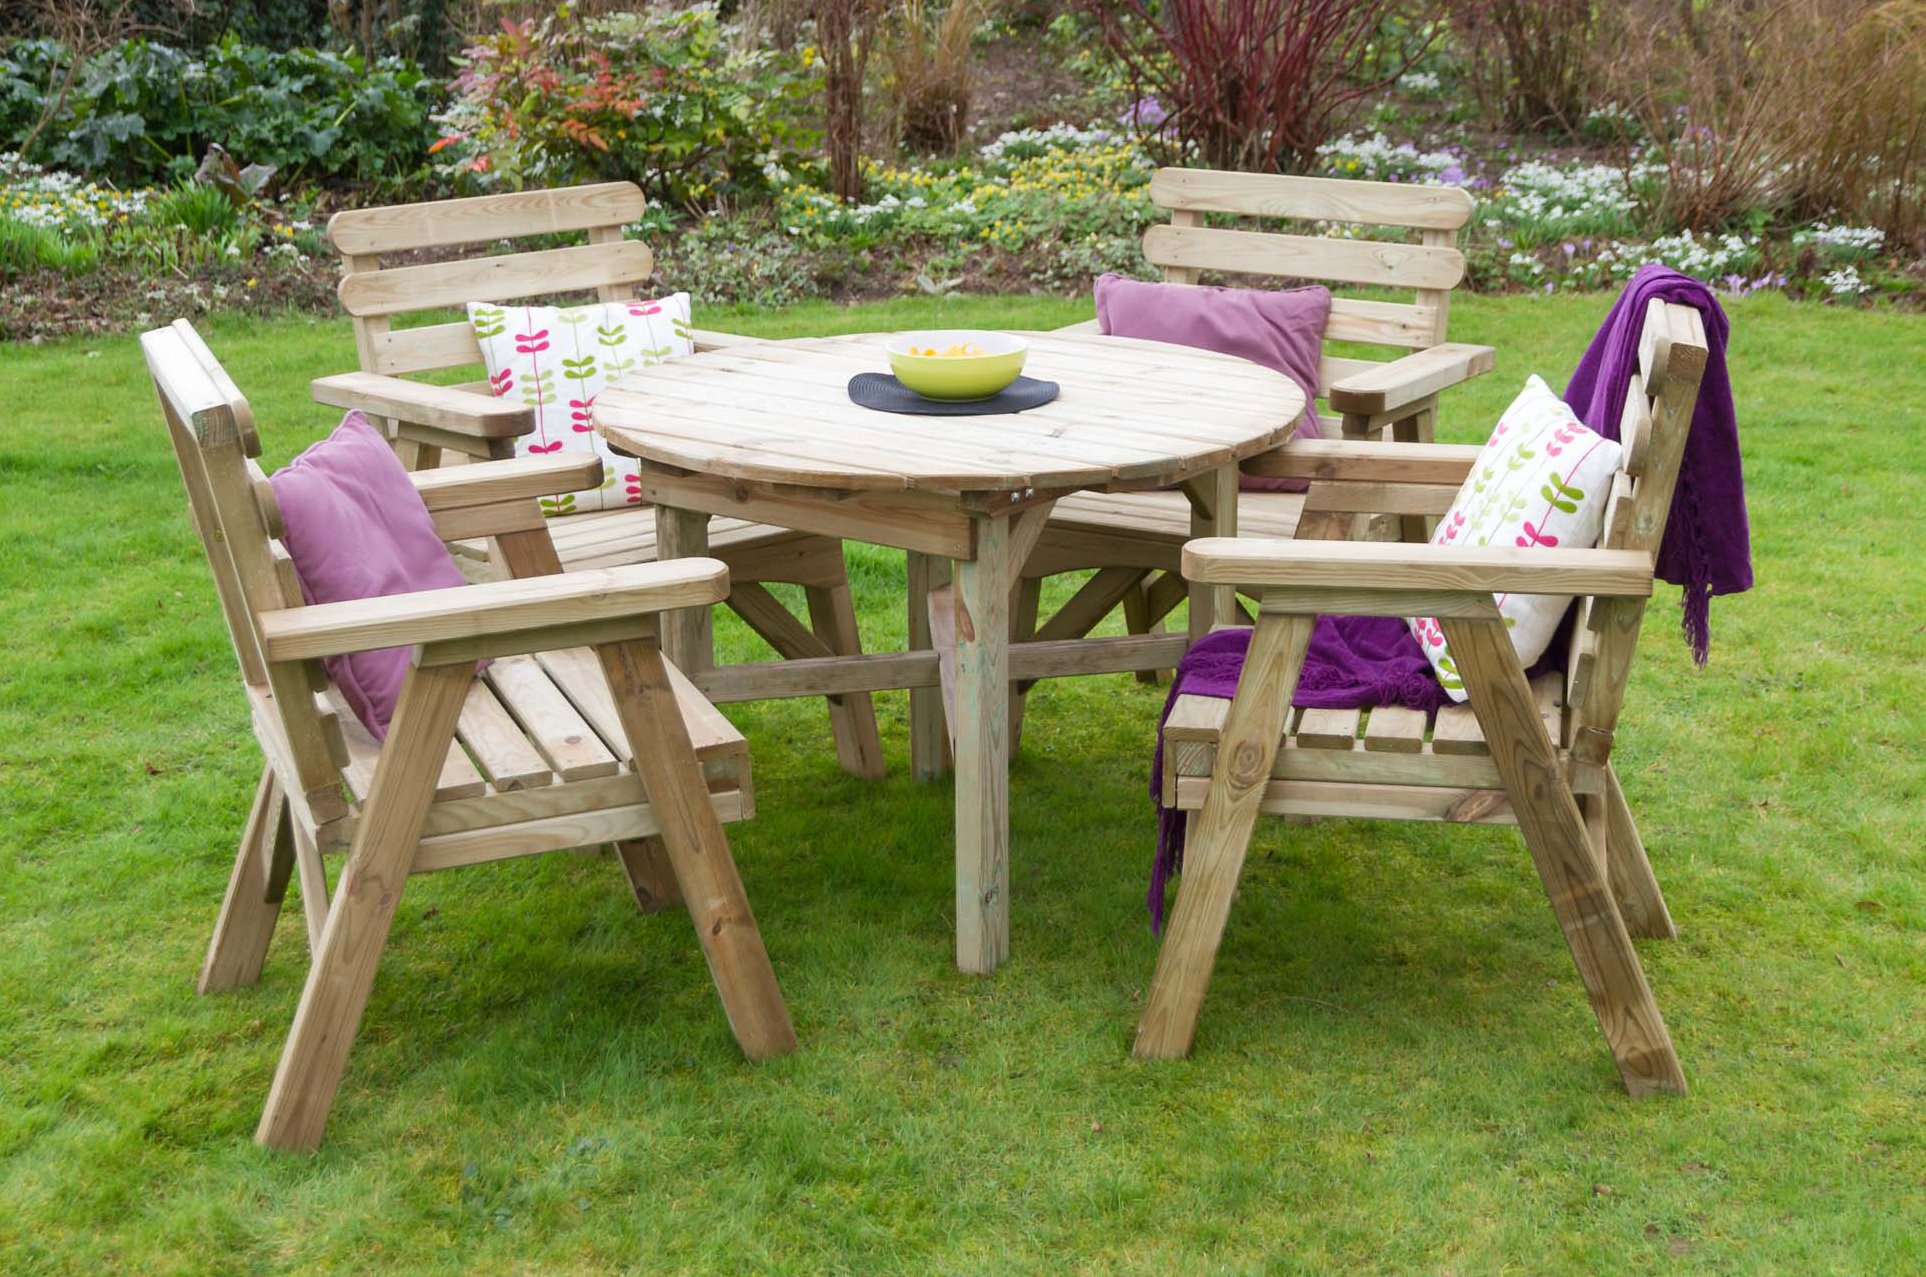 Hover Round Chairs Zest4leisure Abbey Round Table 4 Chair Set